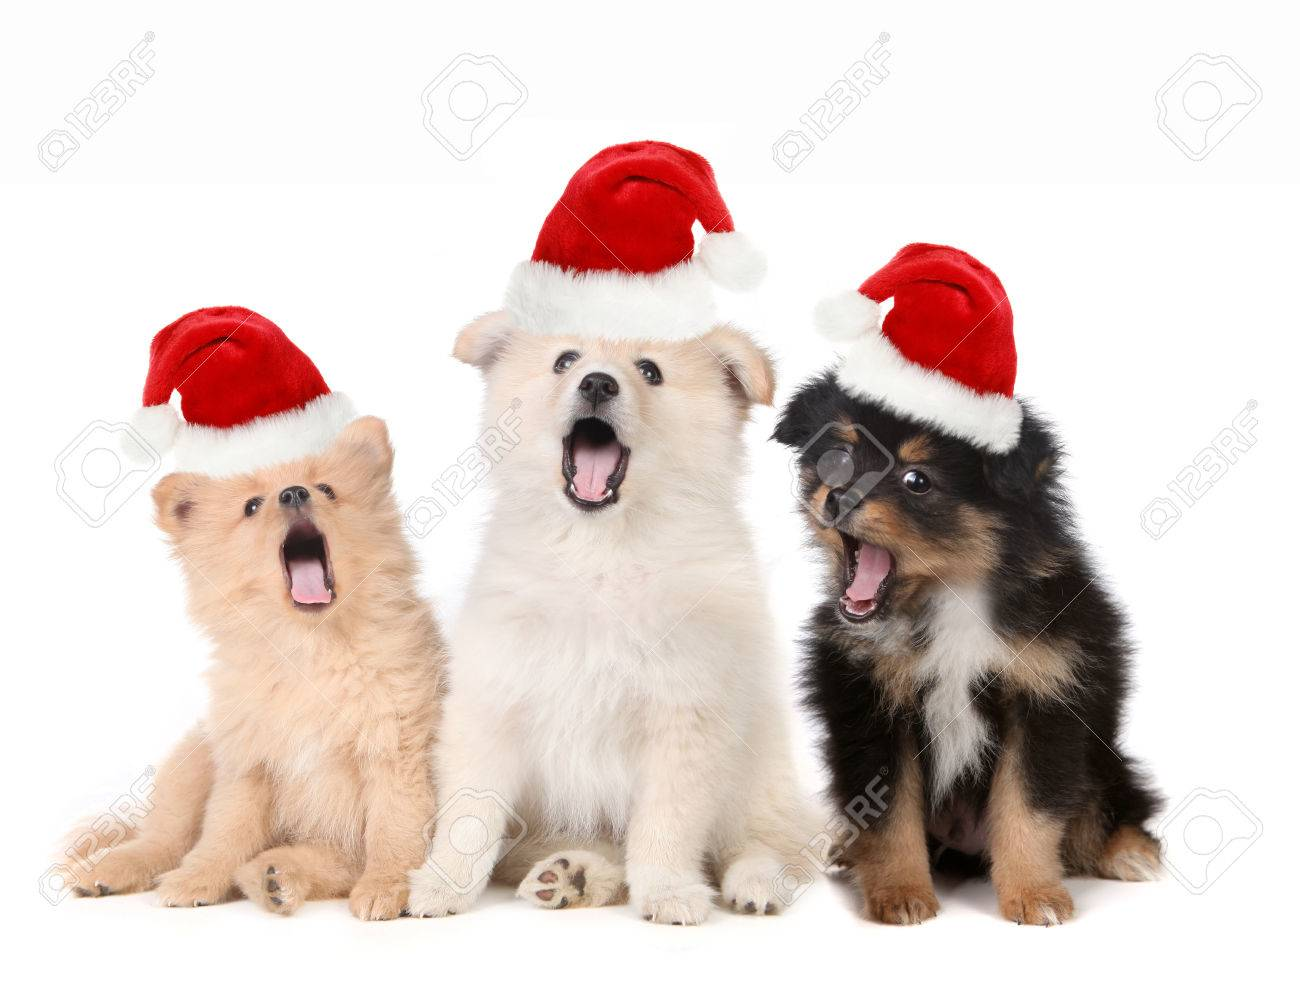 puppies with christmas hats on